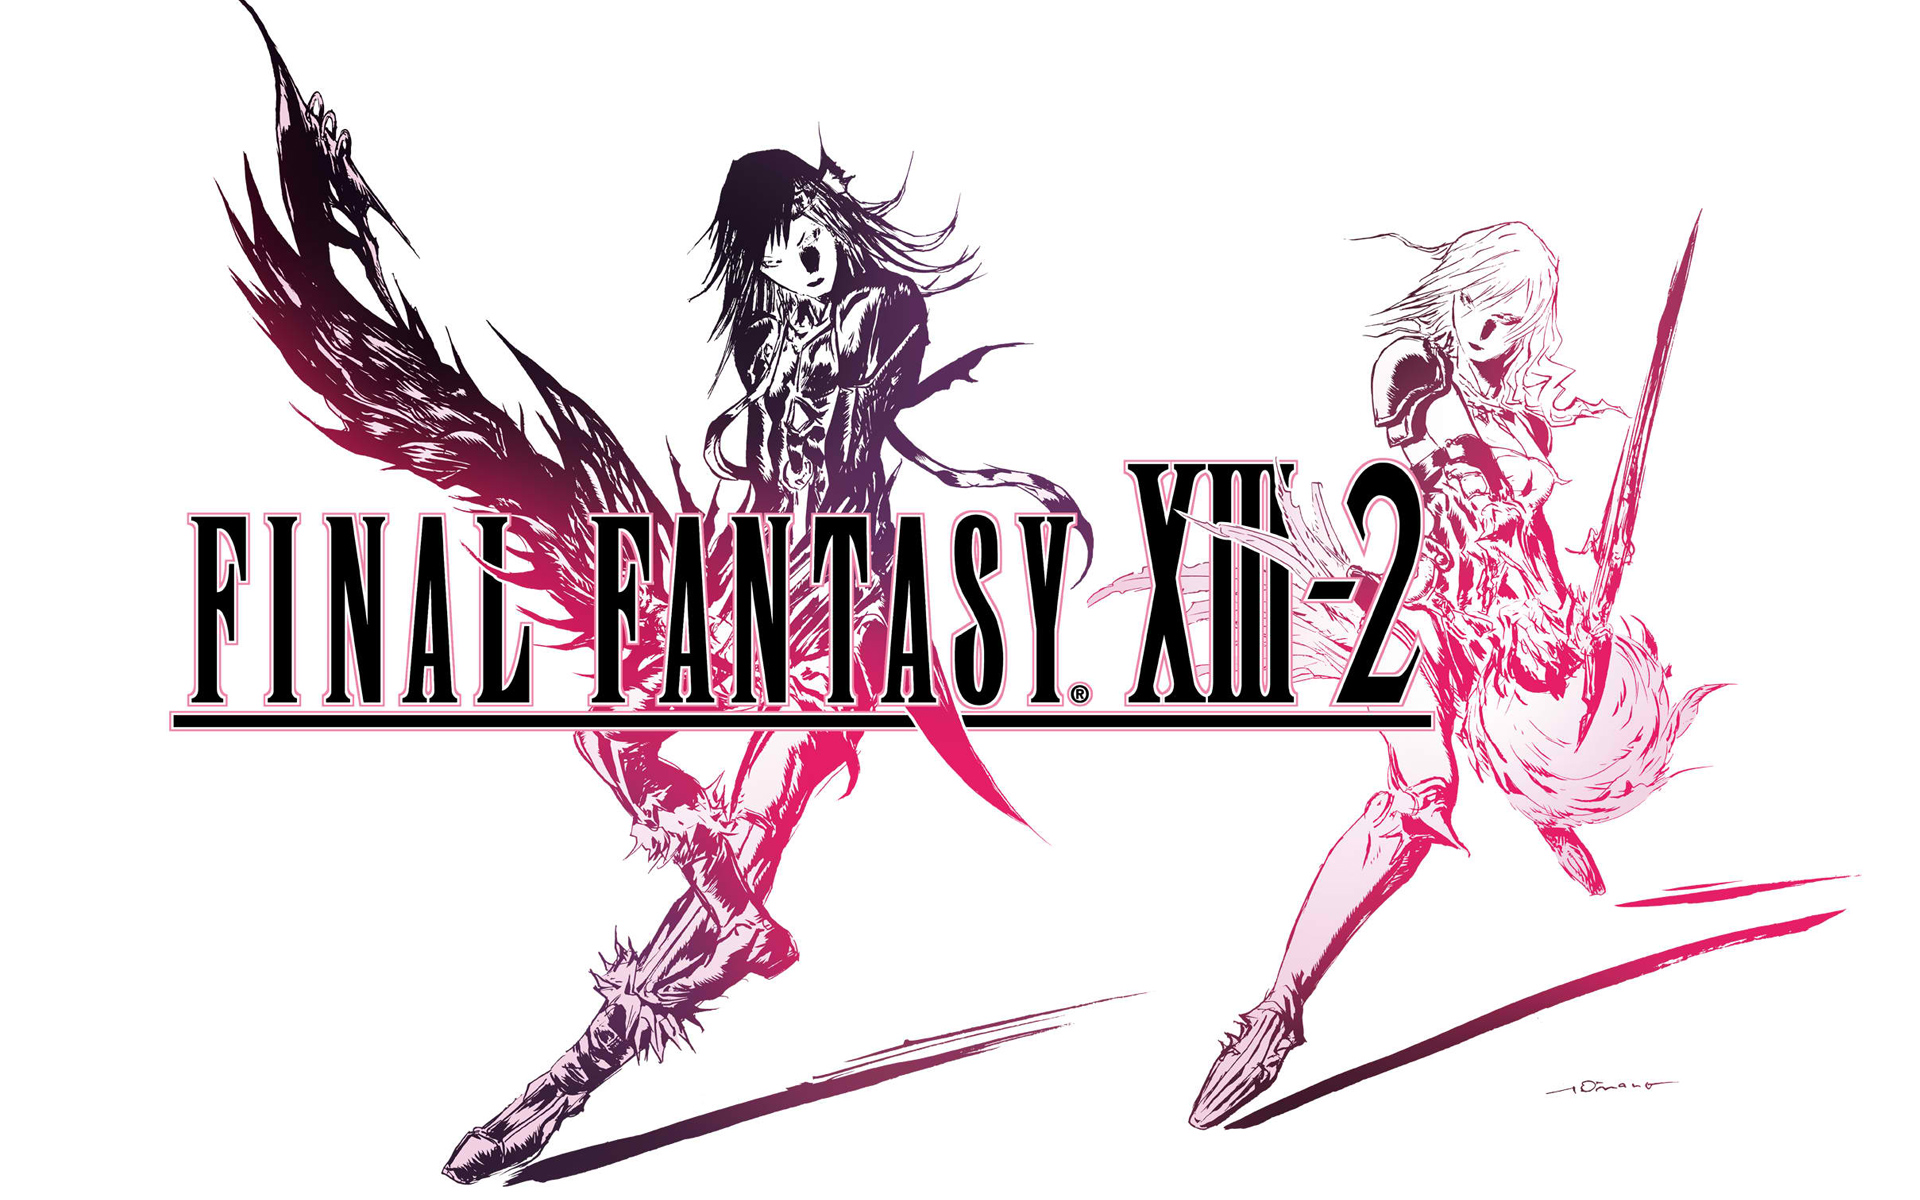 Final Fantasy XIII 2 1885.25 Kb